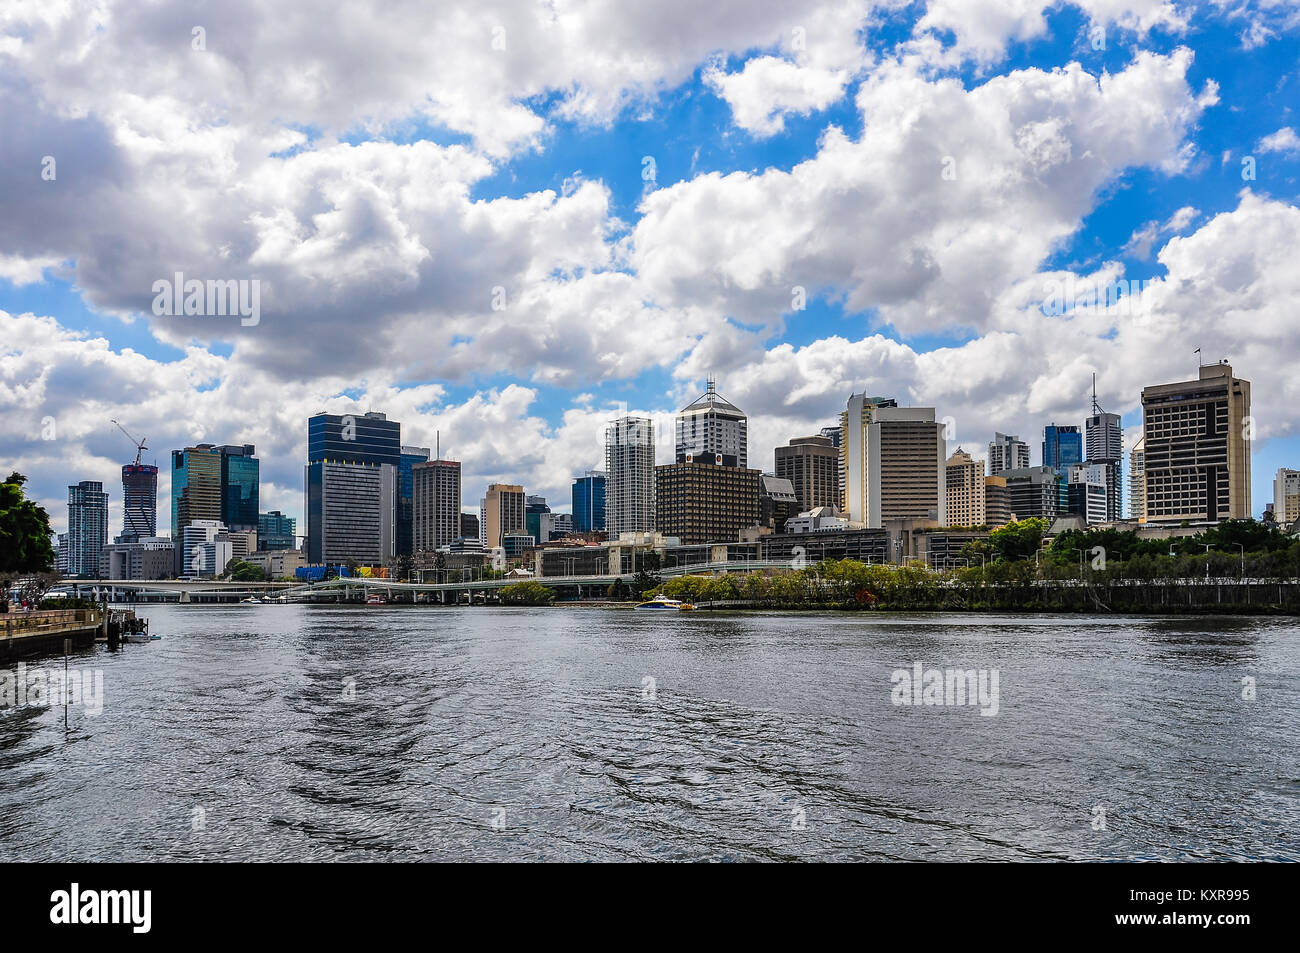 The skyline of the city with the Central Business District in Brisbane, Australia - Stock Image